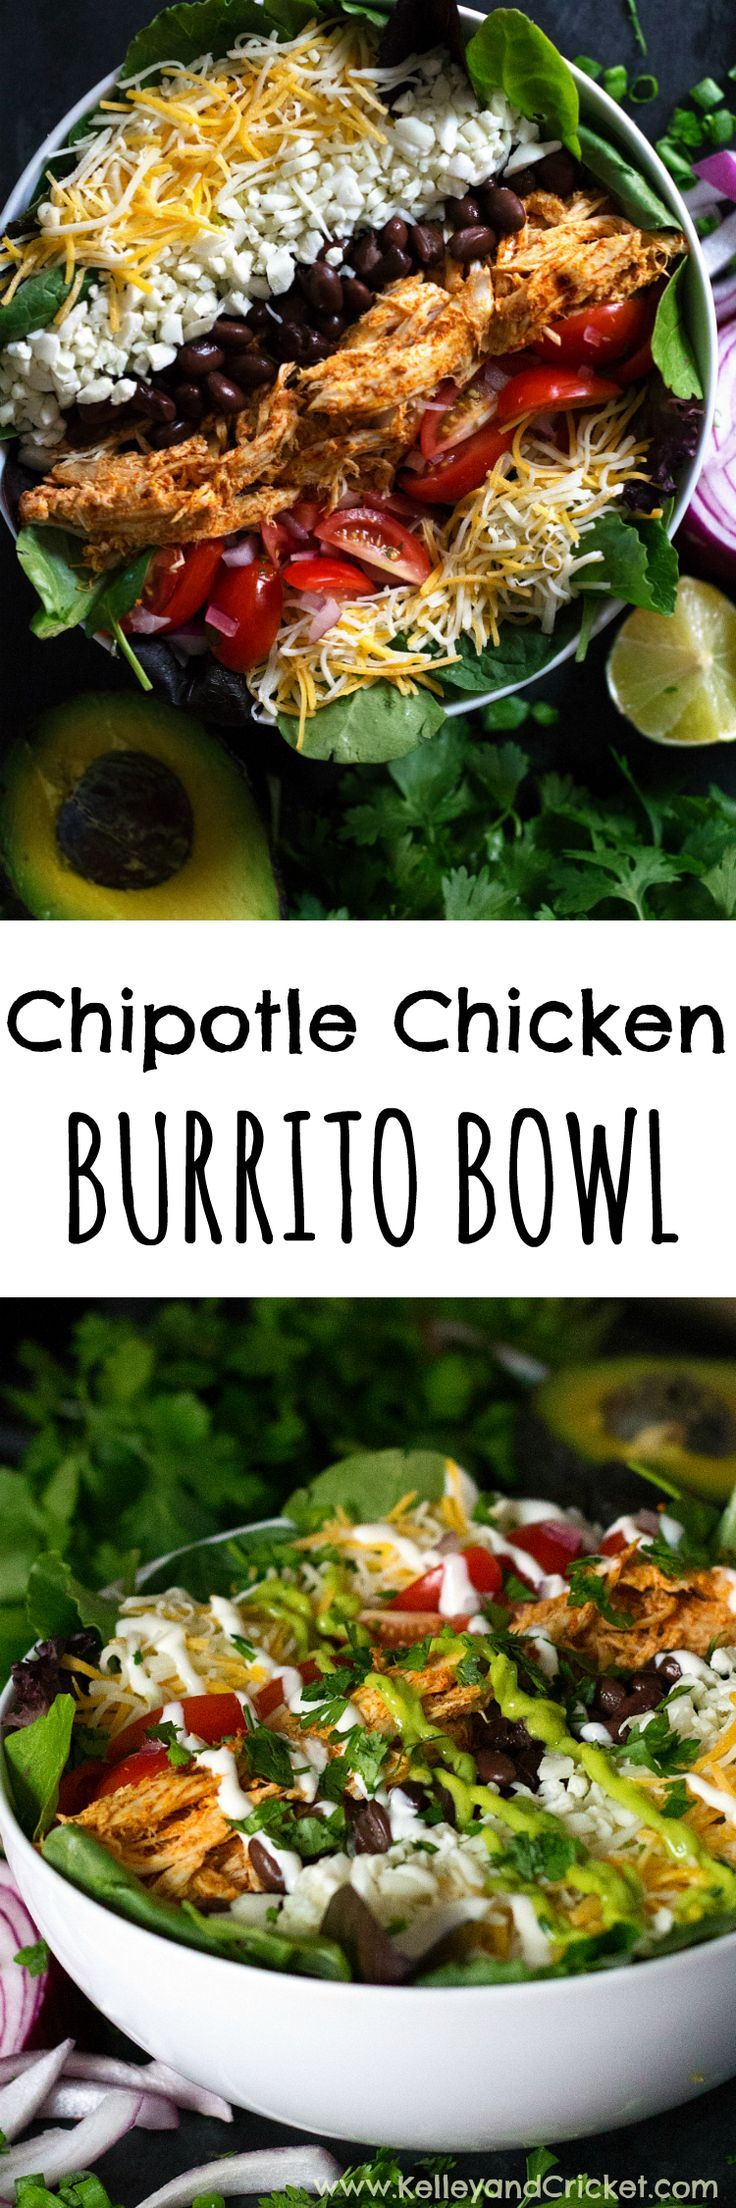 This Chipotle Chicken Burrito Bowl Salad is so full of fresh flavor it will be your new go-to healthy and hearty meal! Use left over chicken breast, or rotisserie chicken, and this healthy and hearty meal can be made in under 10 minutes flat!